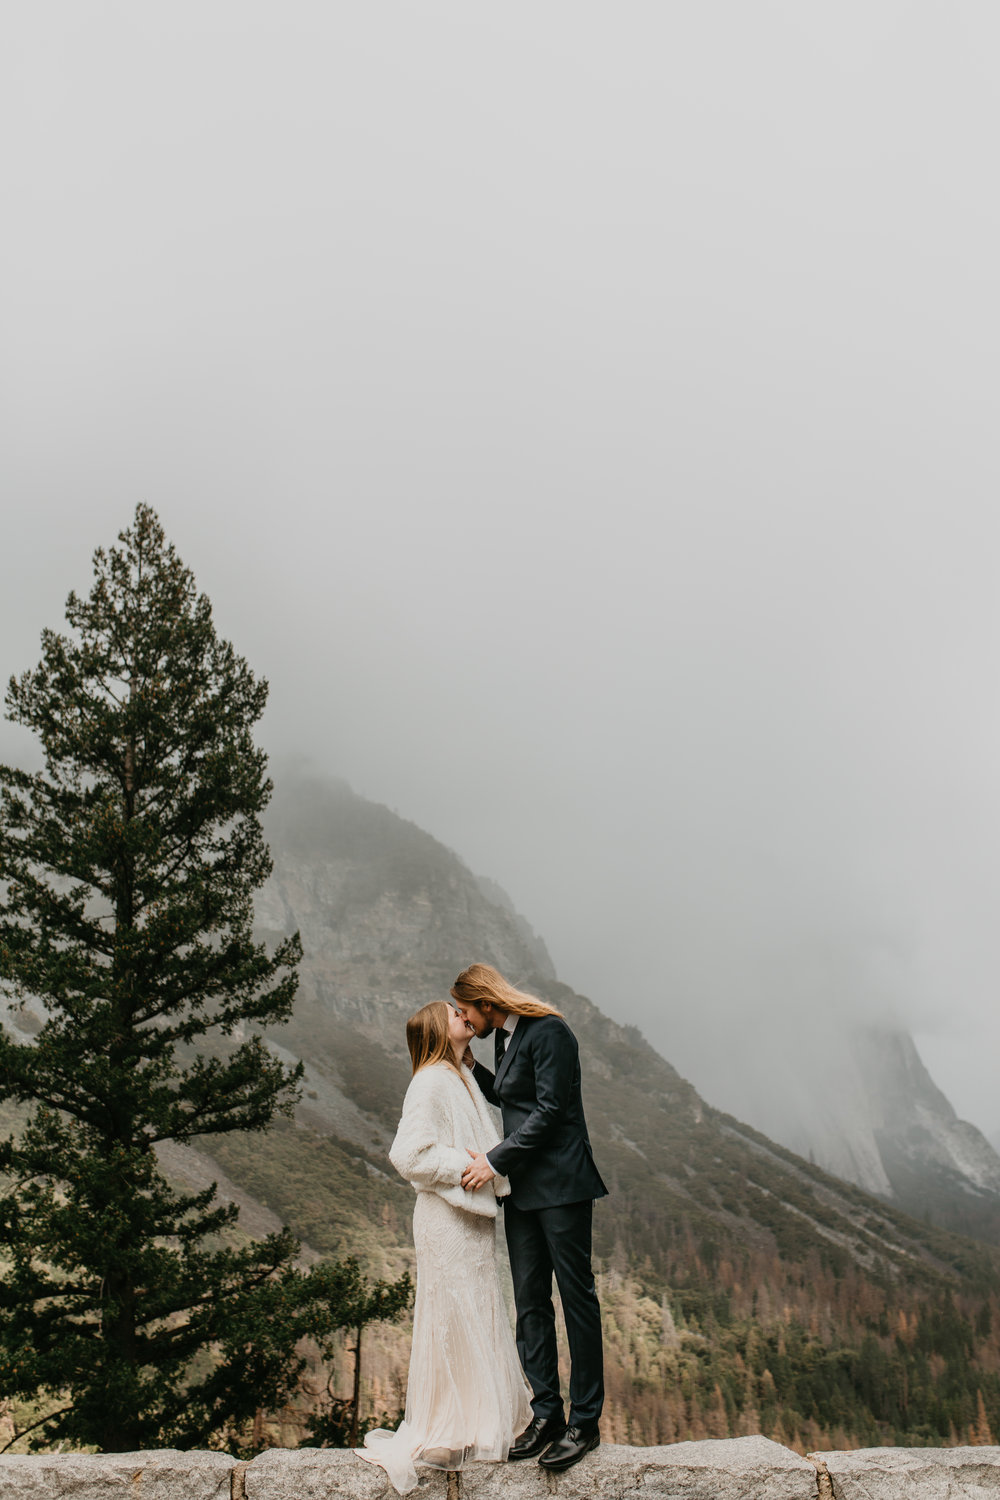 nicole-daacke-photography-yousemite-national-park-elopement-photographer-winter-cloud-moody-elope-inspiration-yosemite-valley-tunnel-view-winter-cloud-fog-weather-wedding-photos-17.jpg